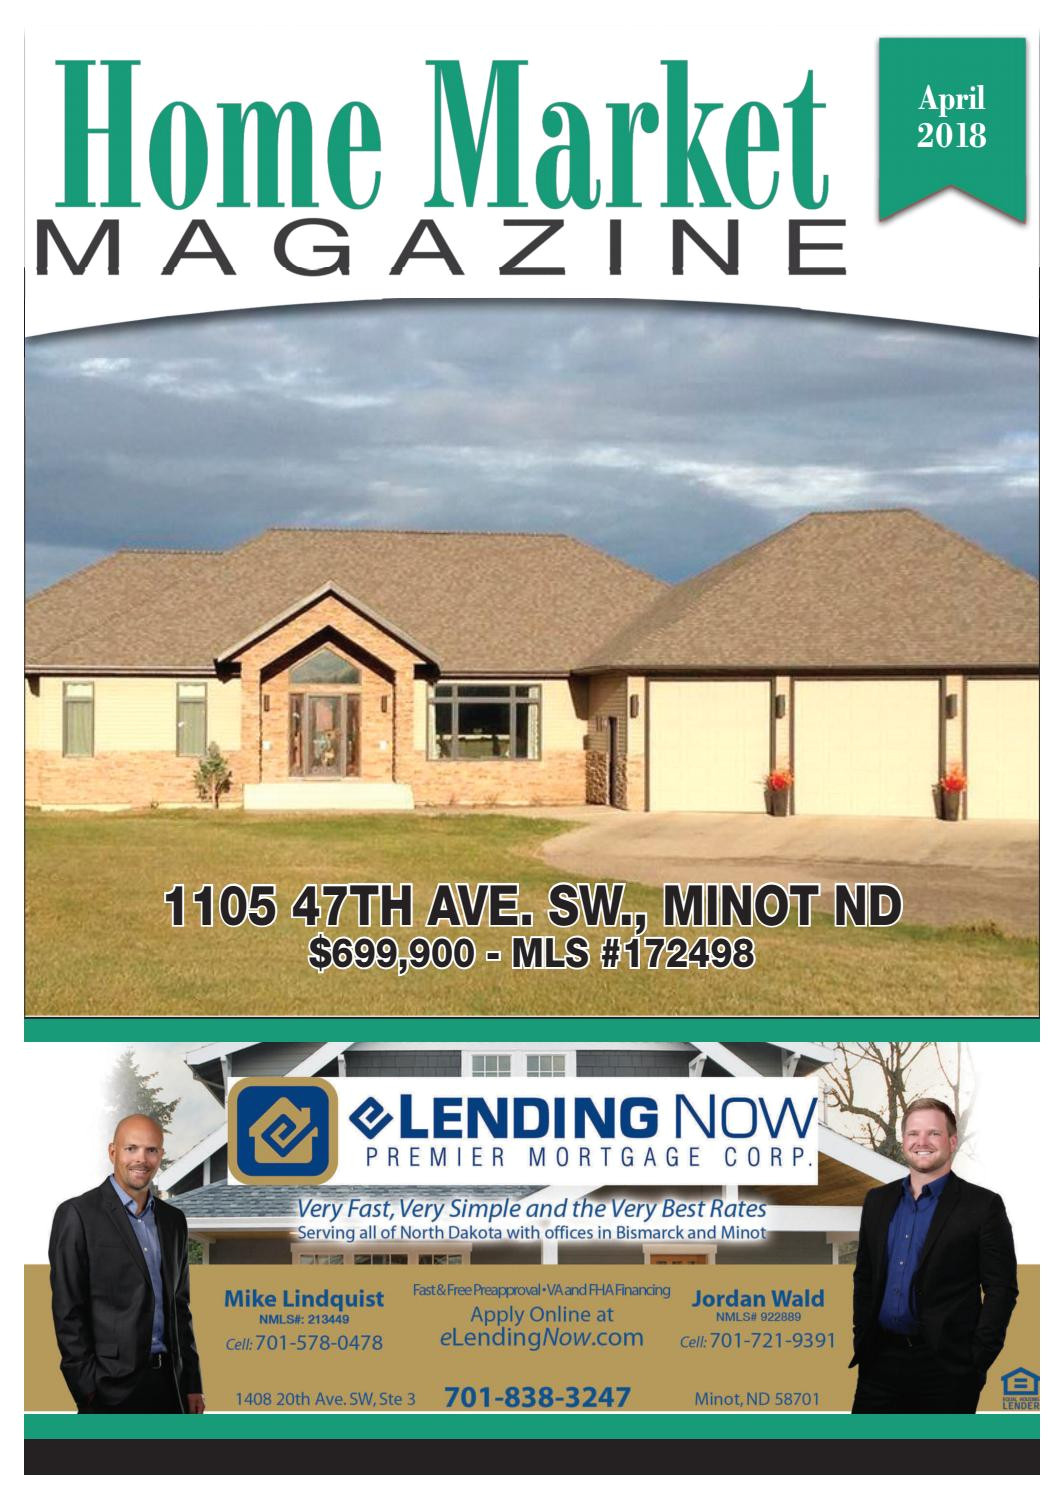 Carpet Cleaning Minot Nd Home Market April 2018 by Minotdailynews issuu